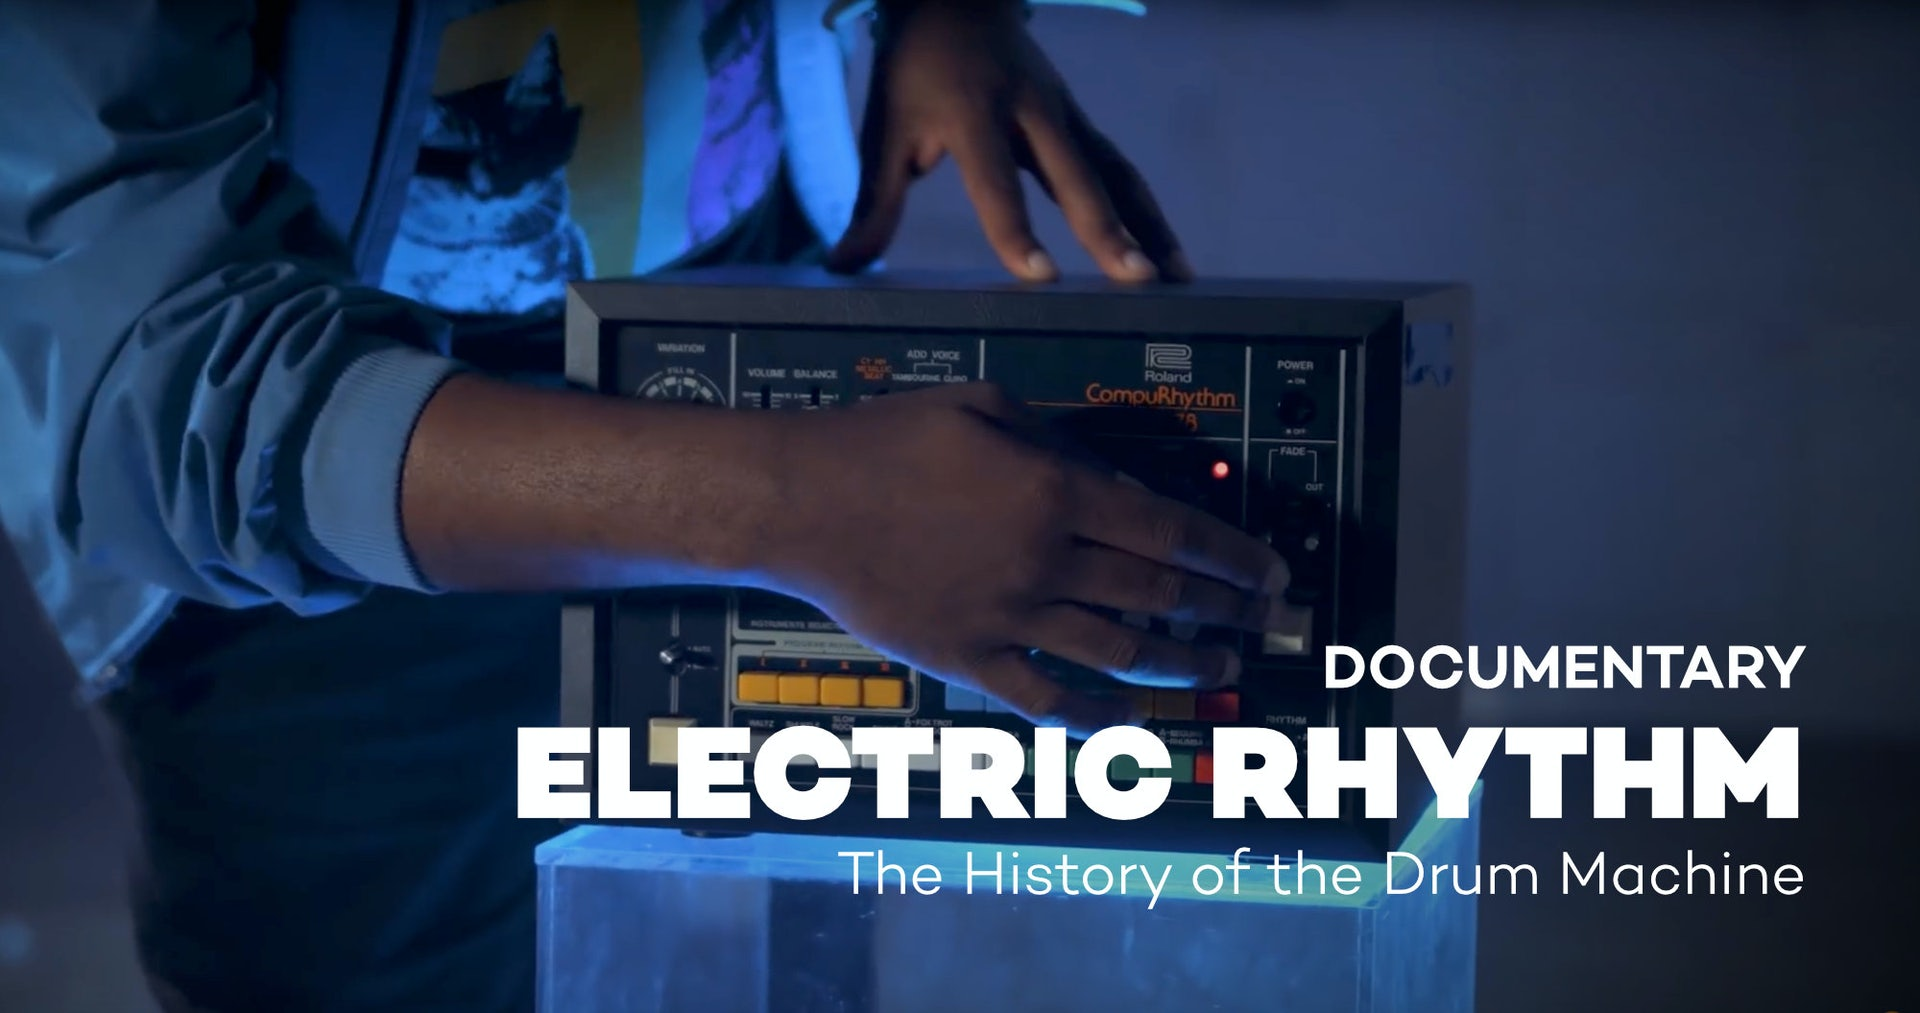 The History of the Drum Machine